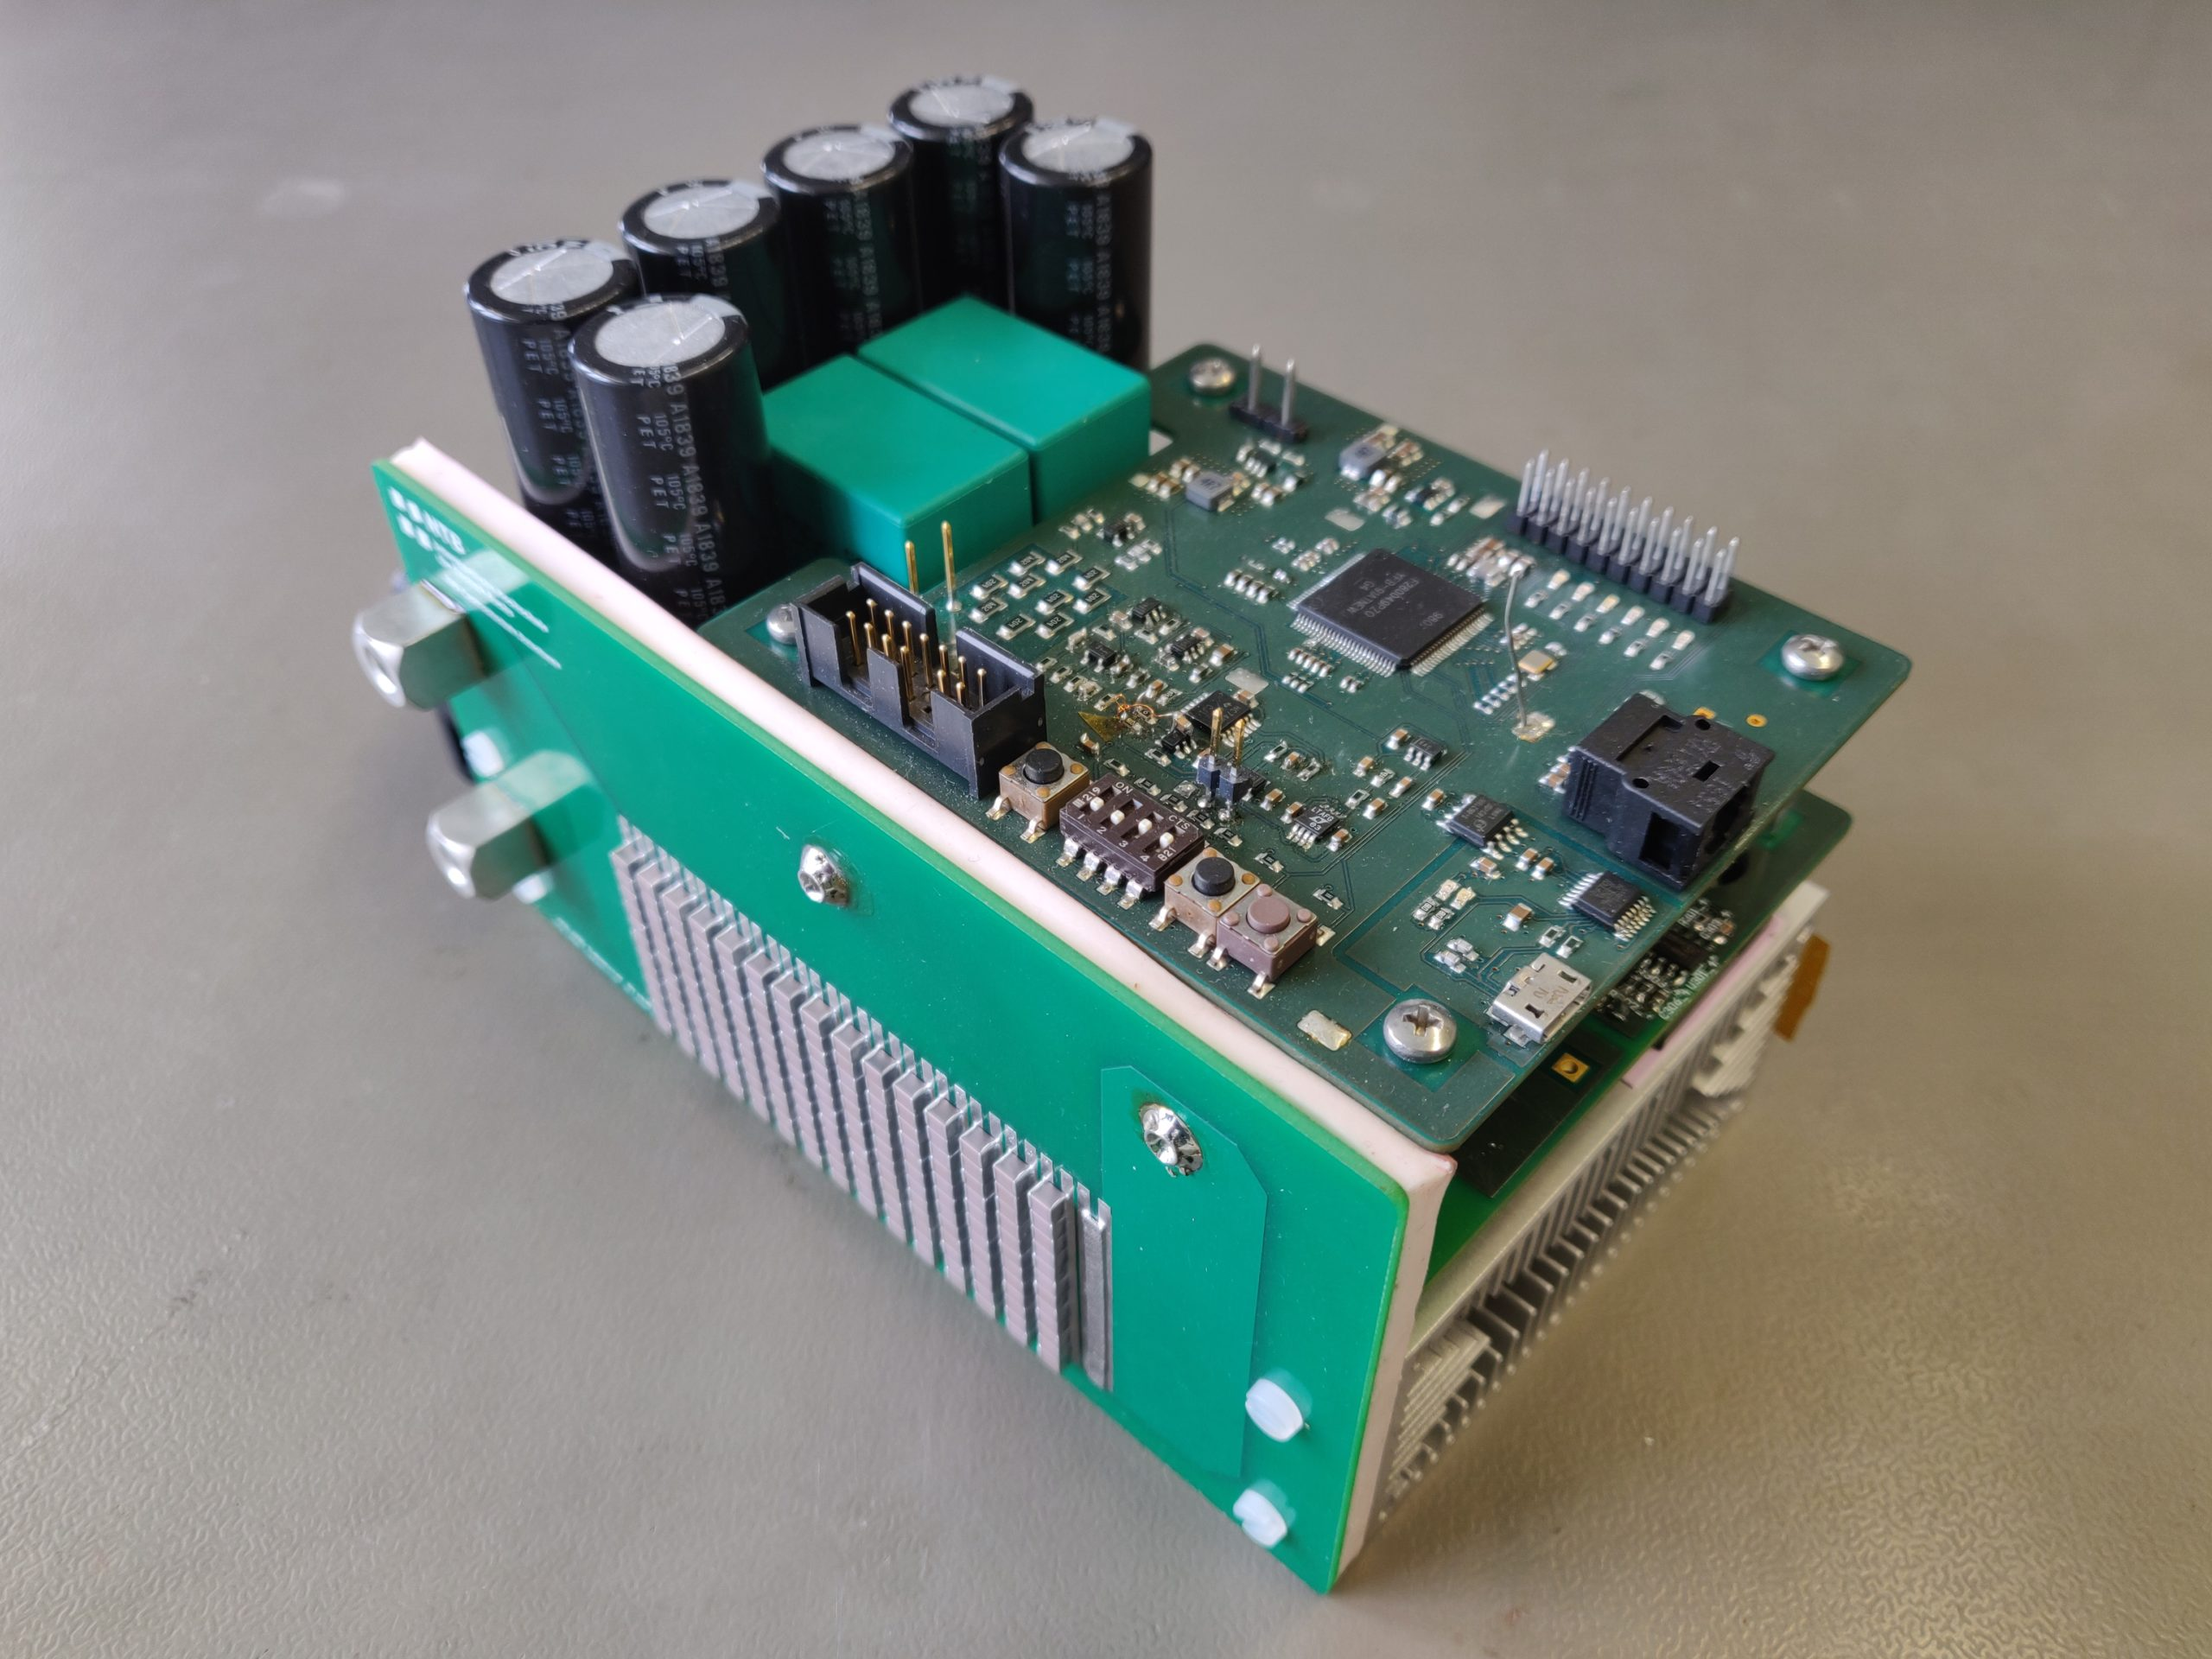 Power electronics for a 4 kW WPT System